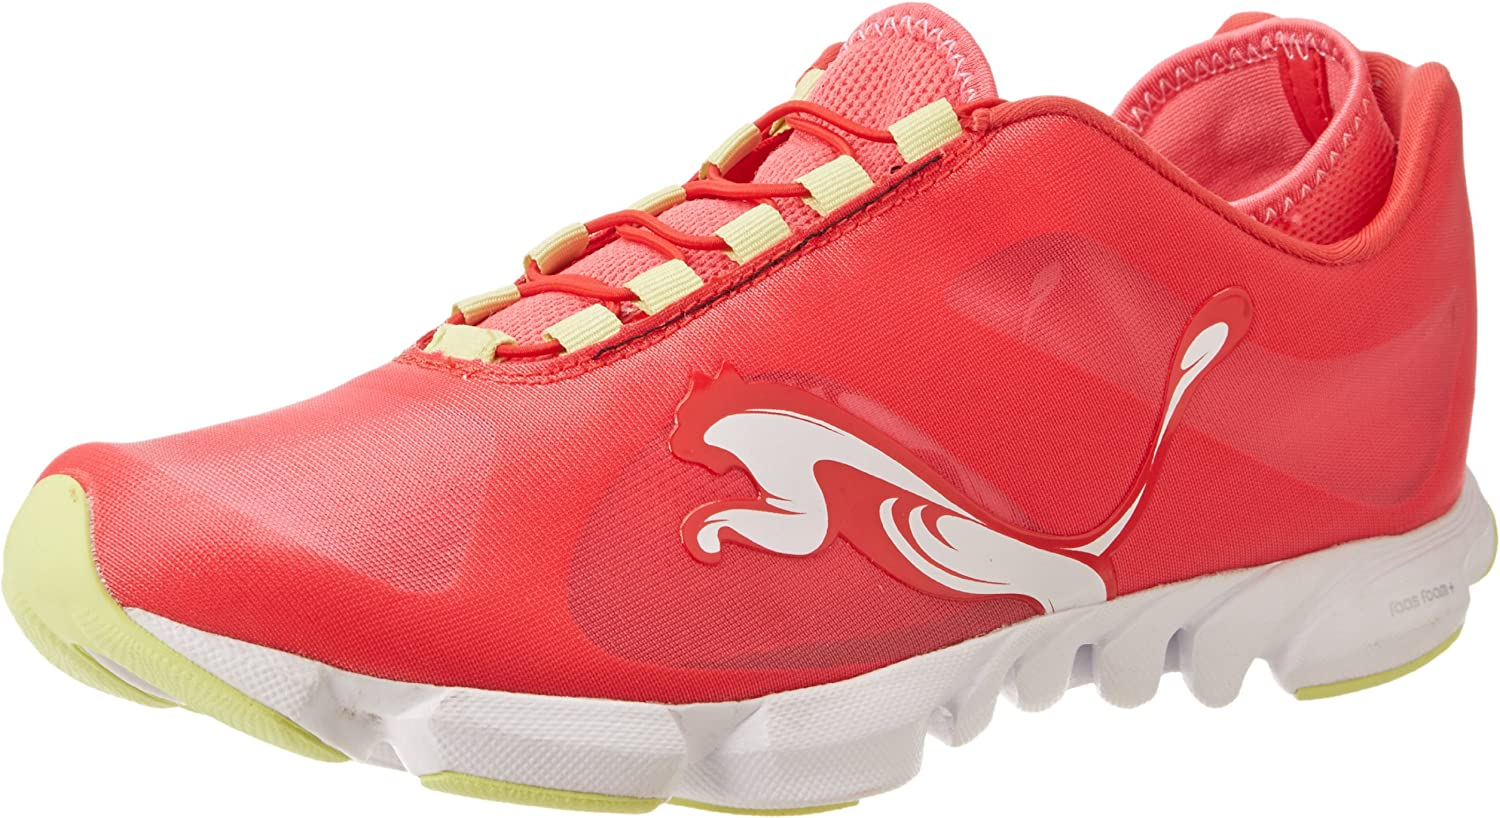 PUMA Women's Formlite XT Ultra Alt Training Shoe